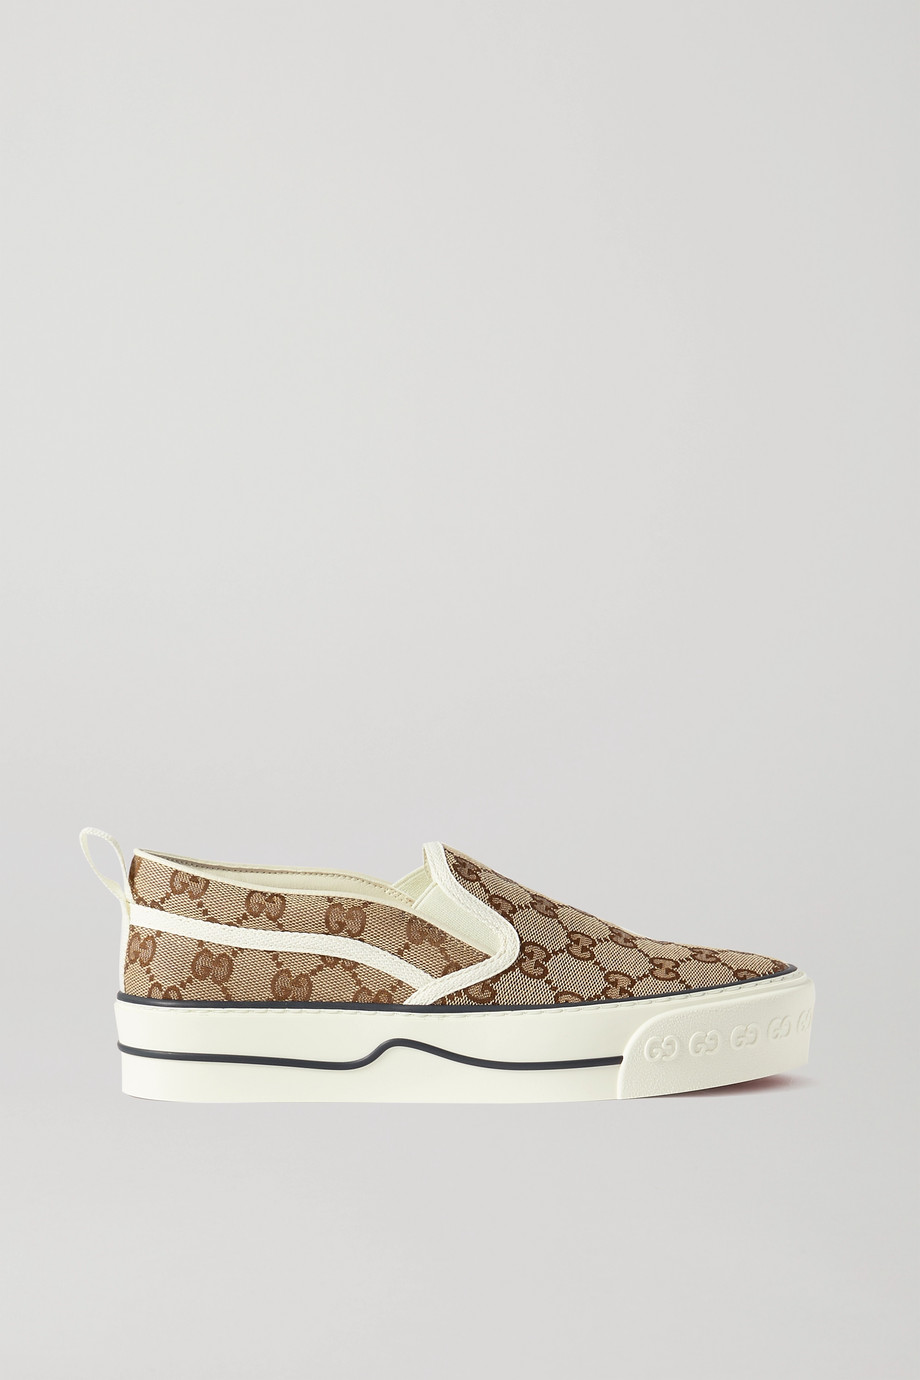 GUCCI Tennis 1977 printed canvas slip-on sneakers